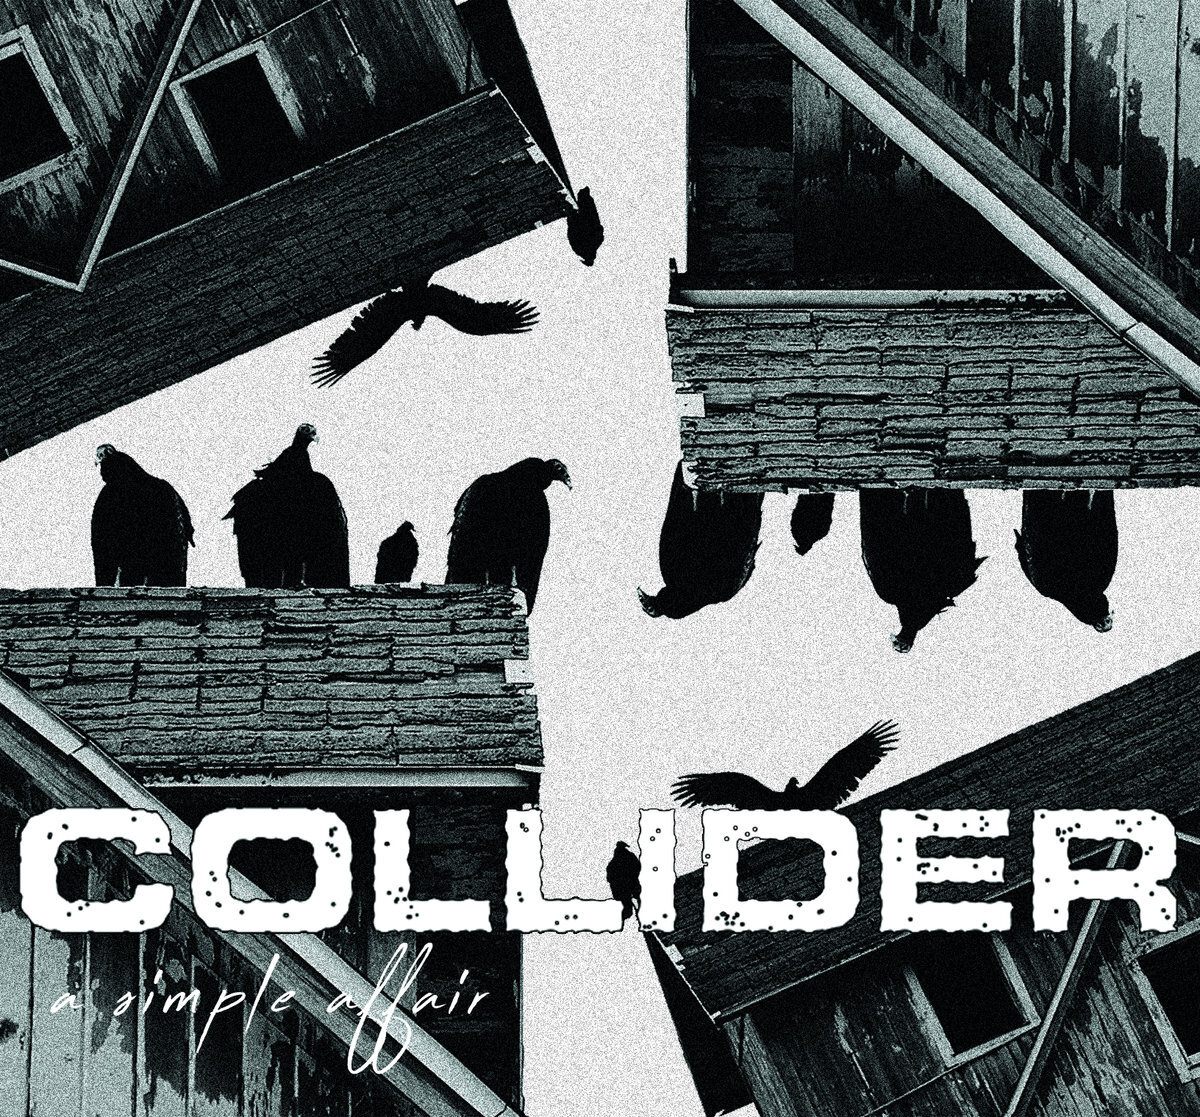 Collider - A Simple Affair 2019 - Produced - Engineered - Mixed - Mastered